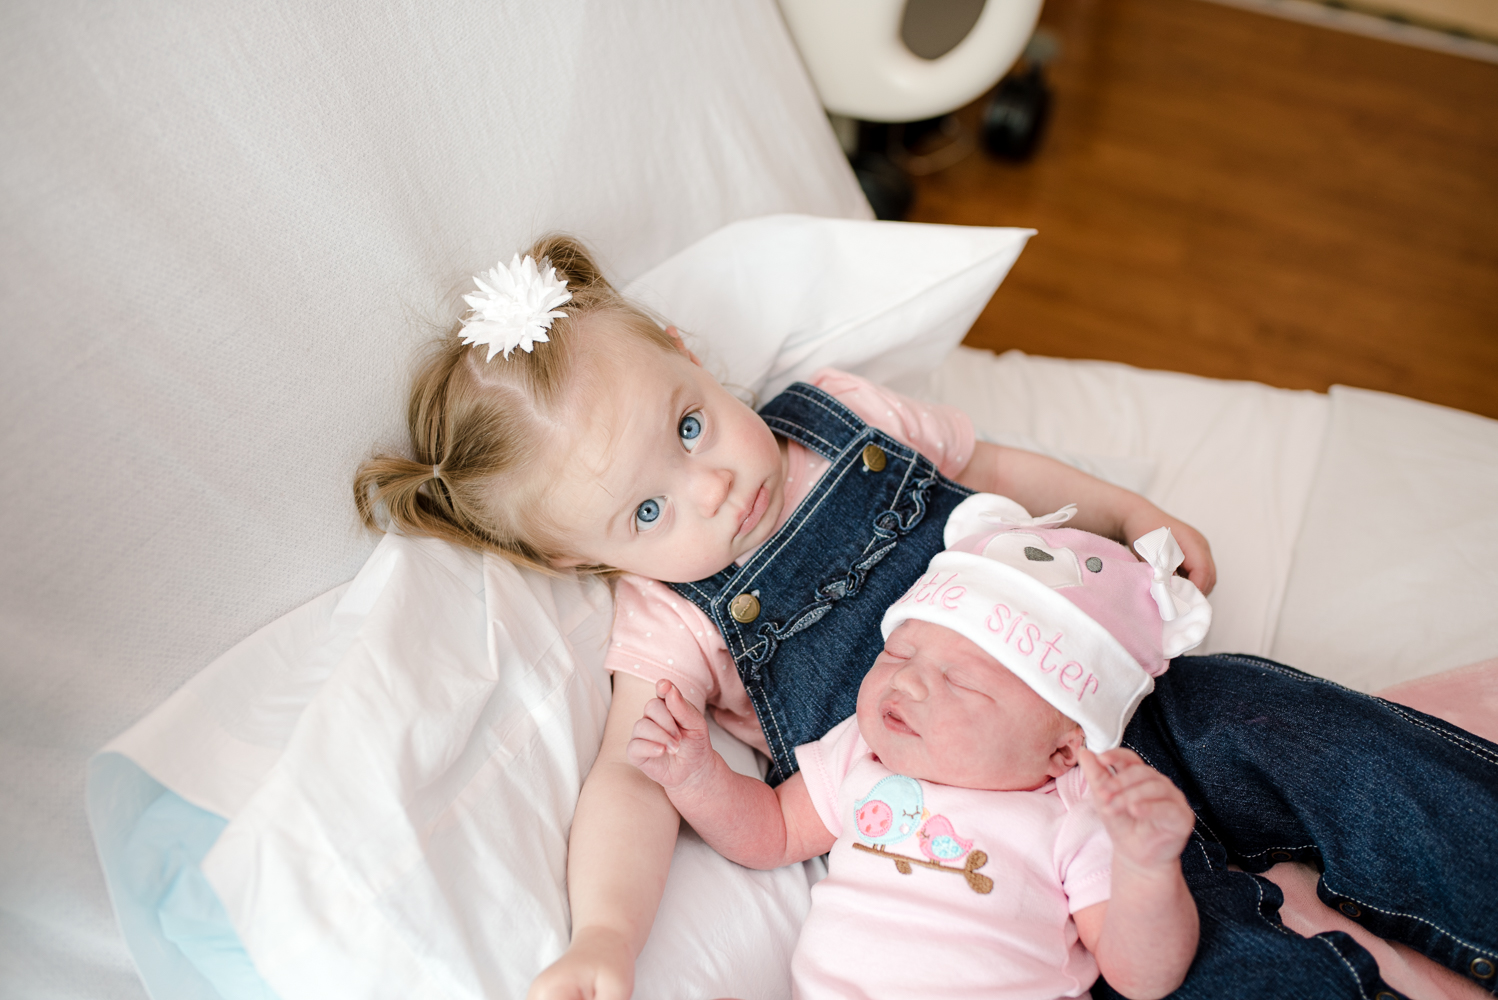 Sweetest big sister ever, holding her new baby sister.